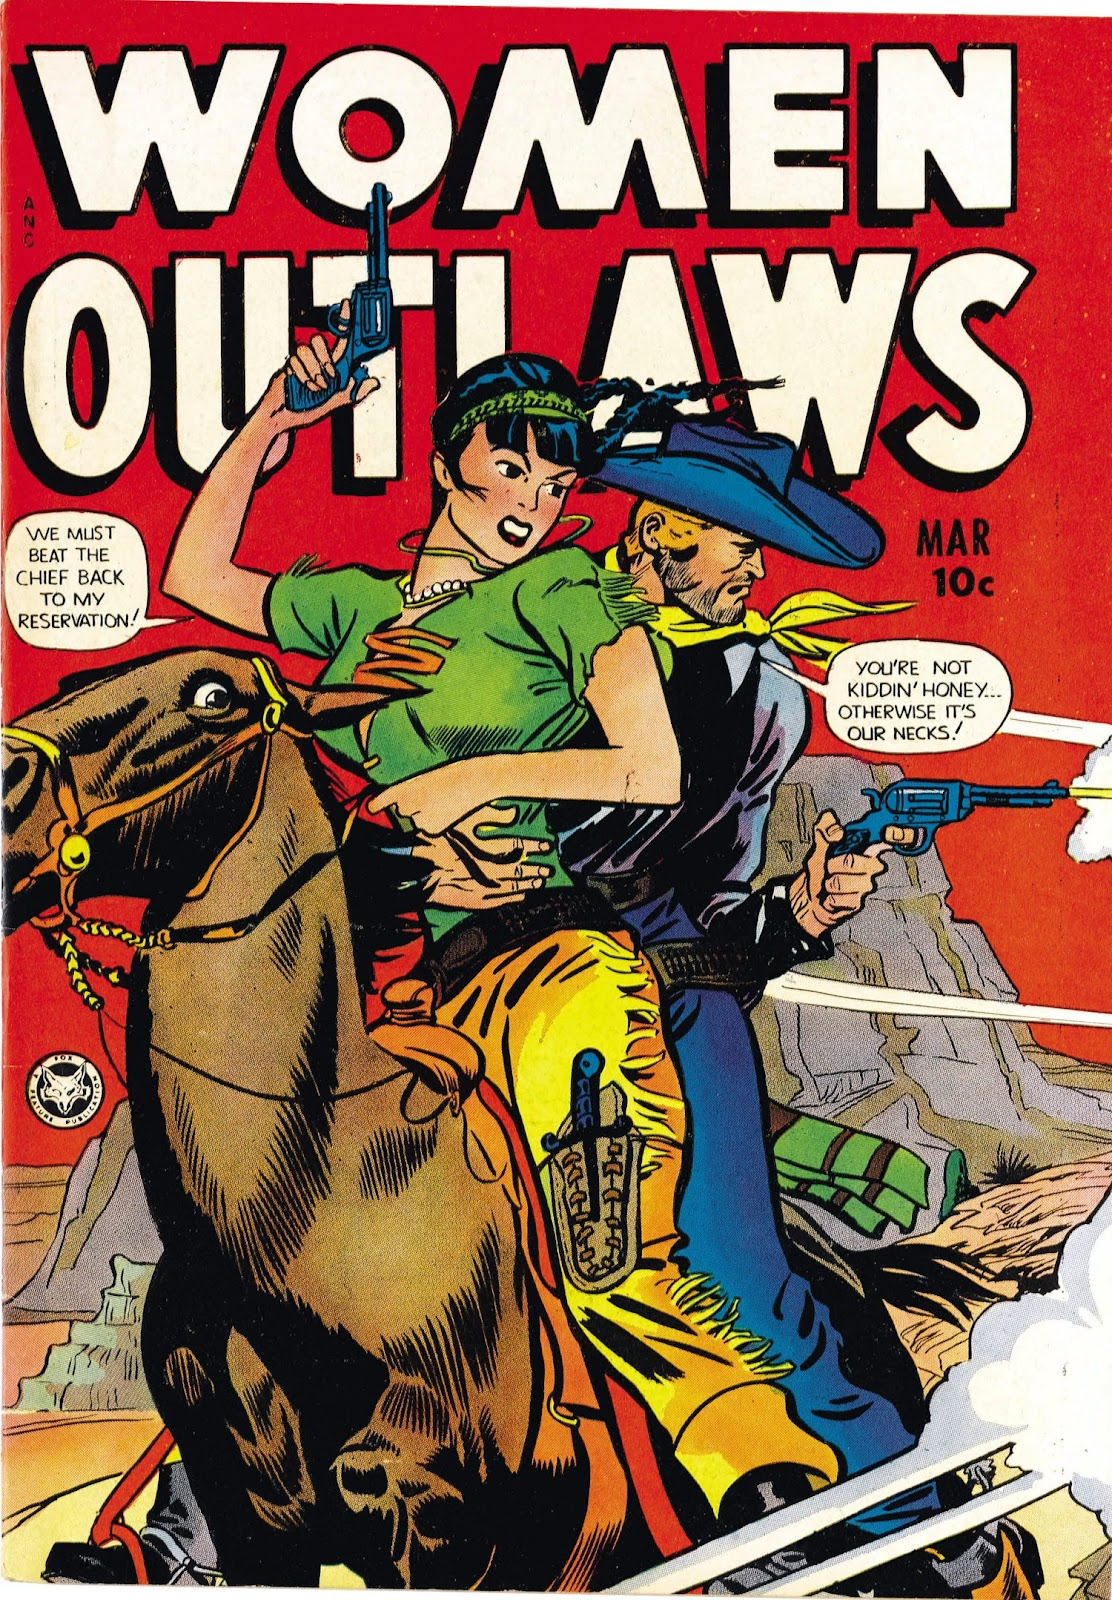 Read online Women Outlaws comic -  Issue #5 - 1